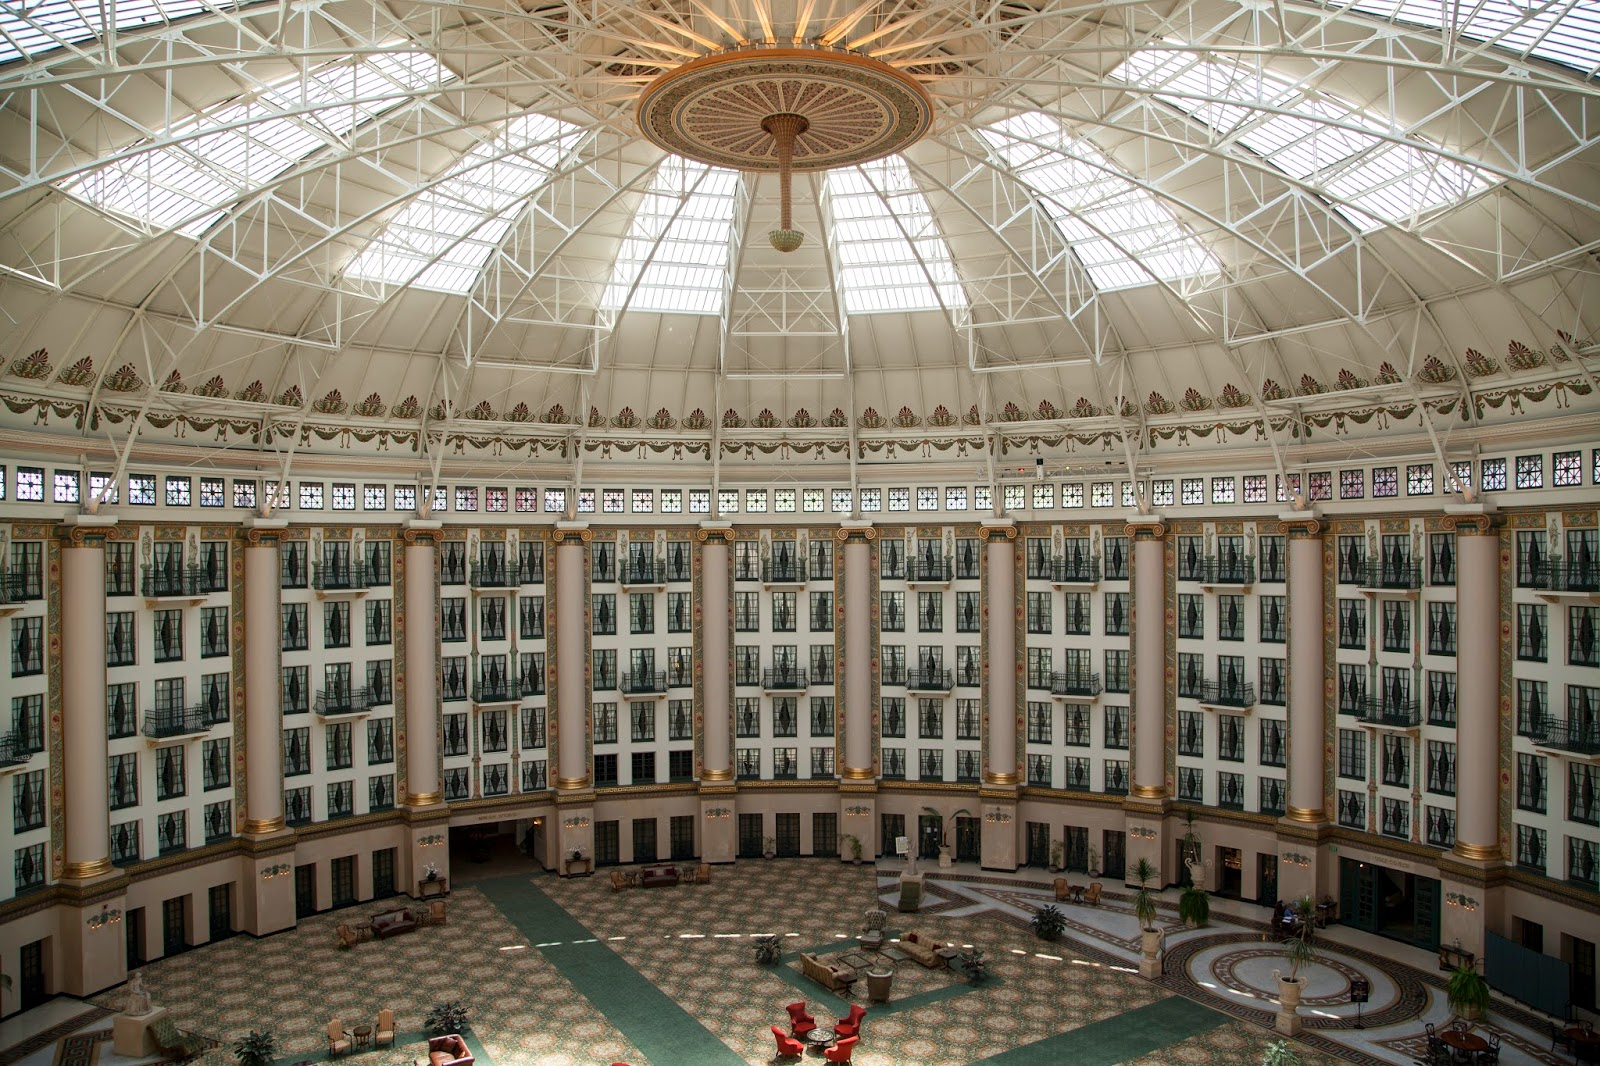 http://frenchlick.com/hotels/westbaden